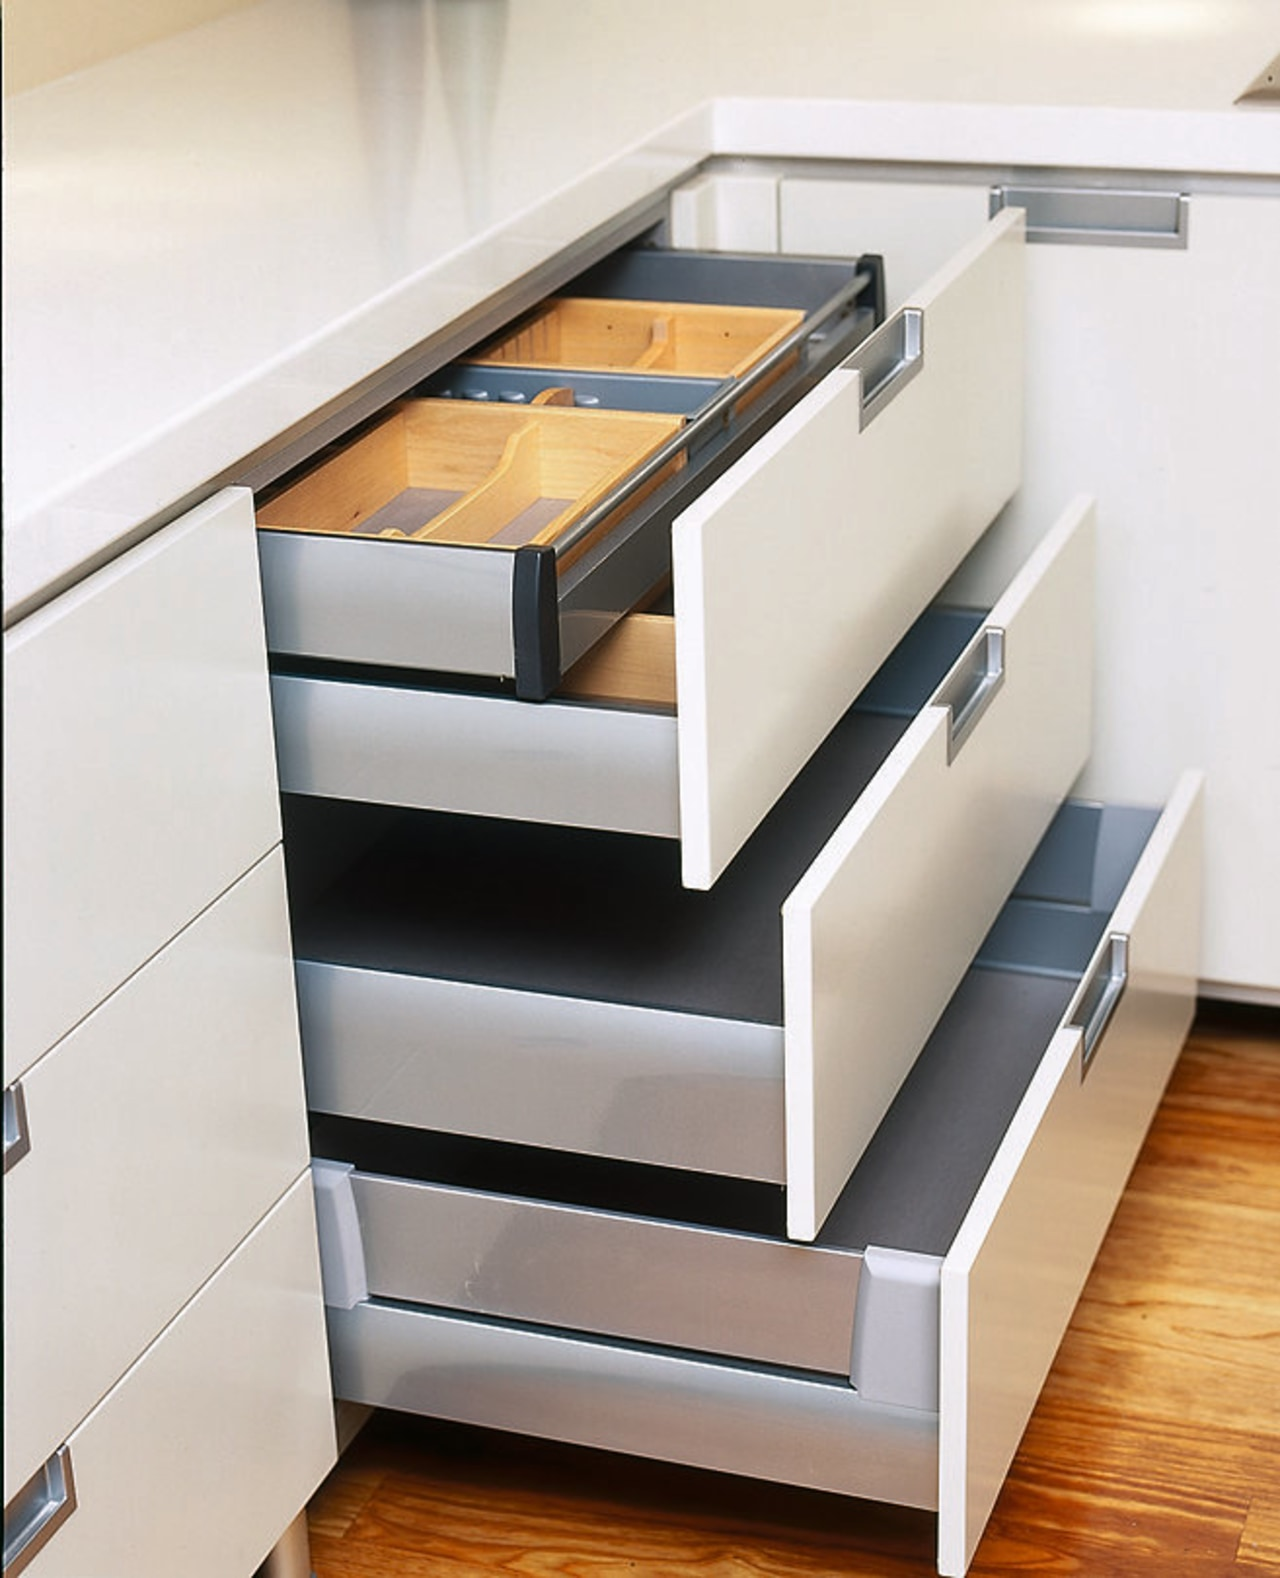 View of the storage cabinetry, chest of drawers, countertop, drawer, floor, furniture, kitchen, product, product design, shelf, stairs, white